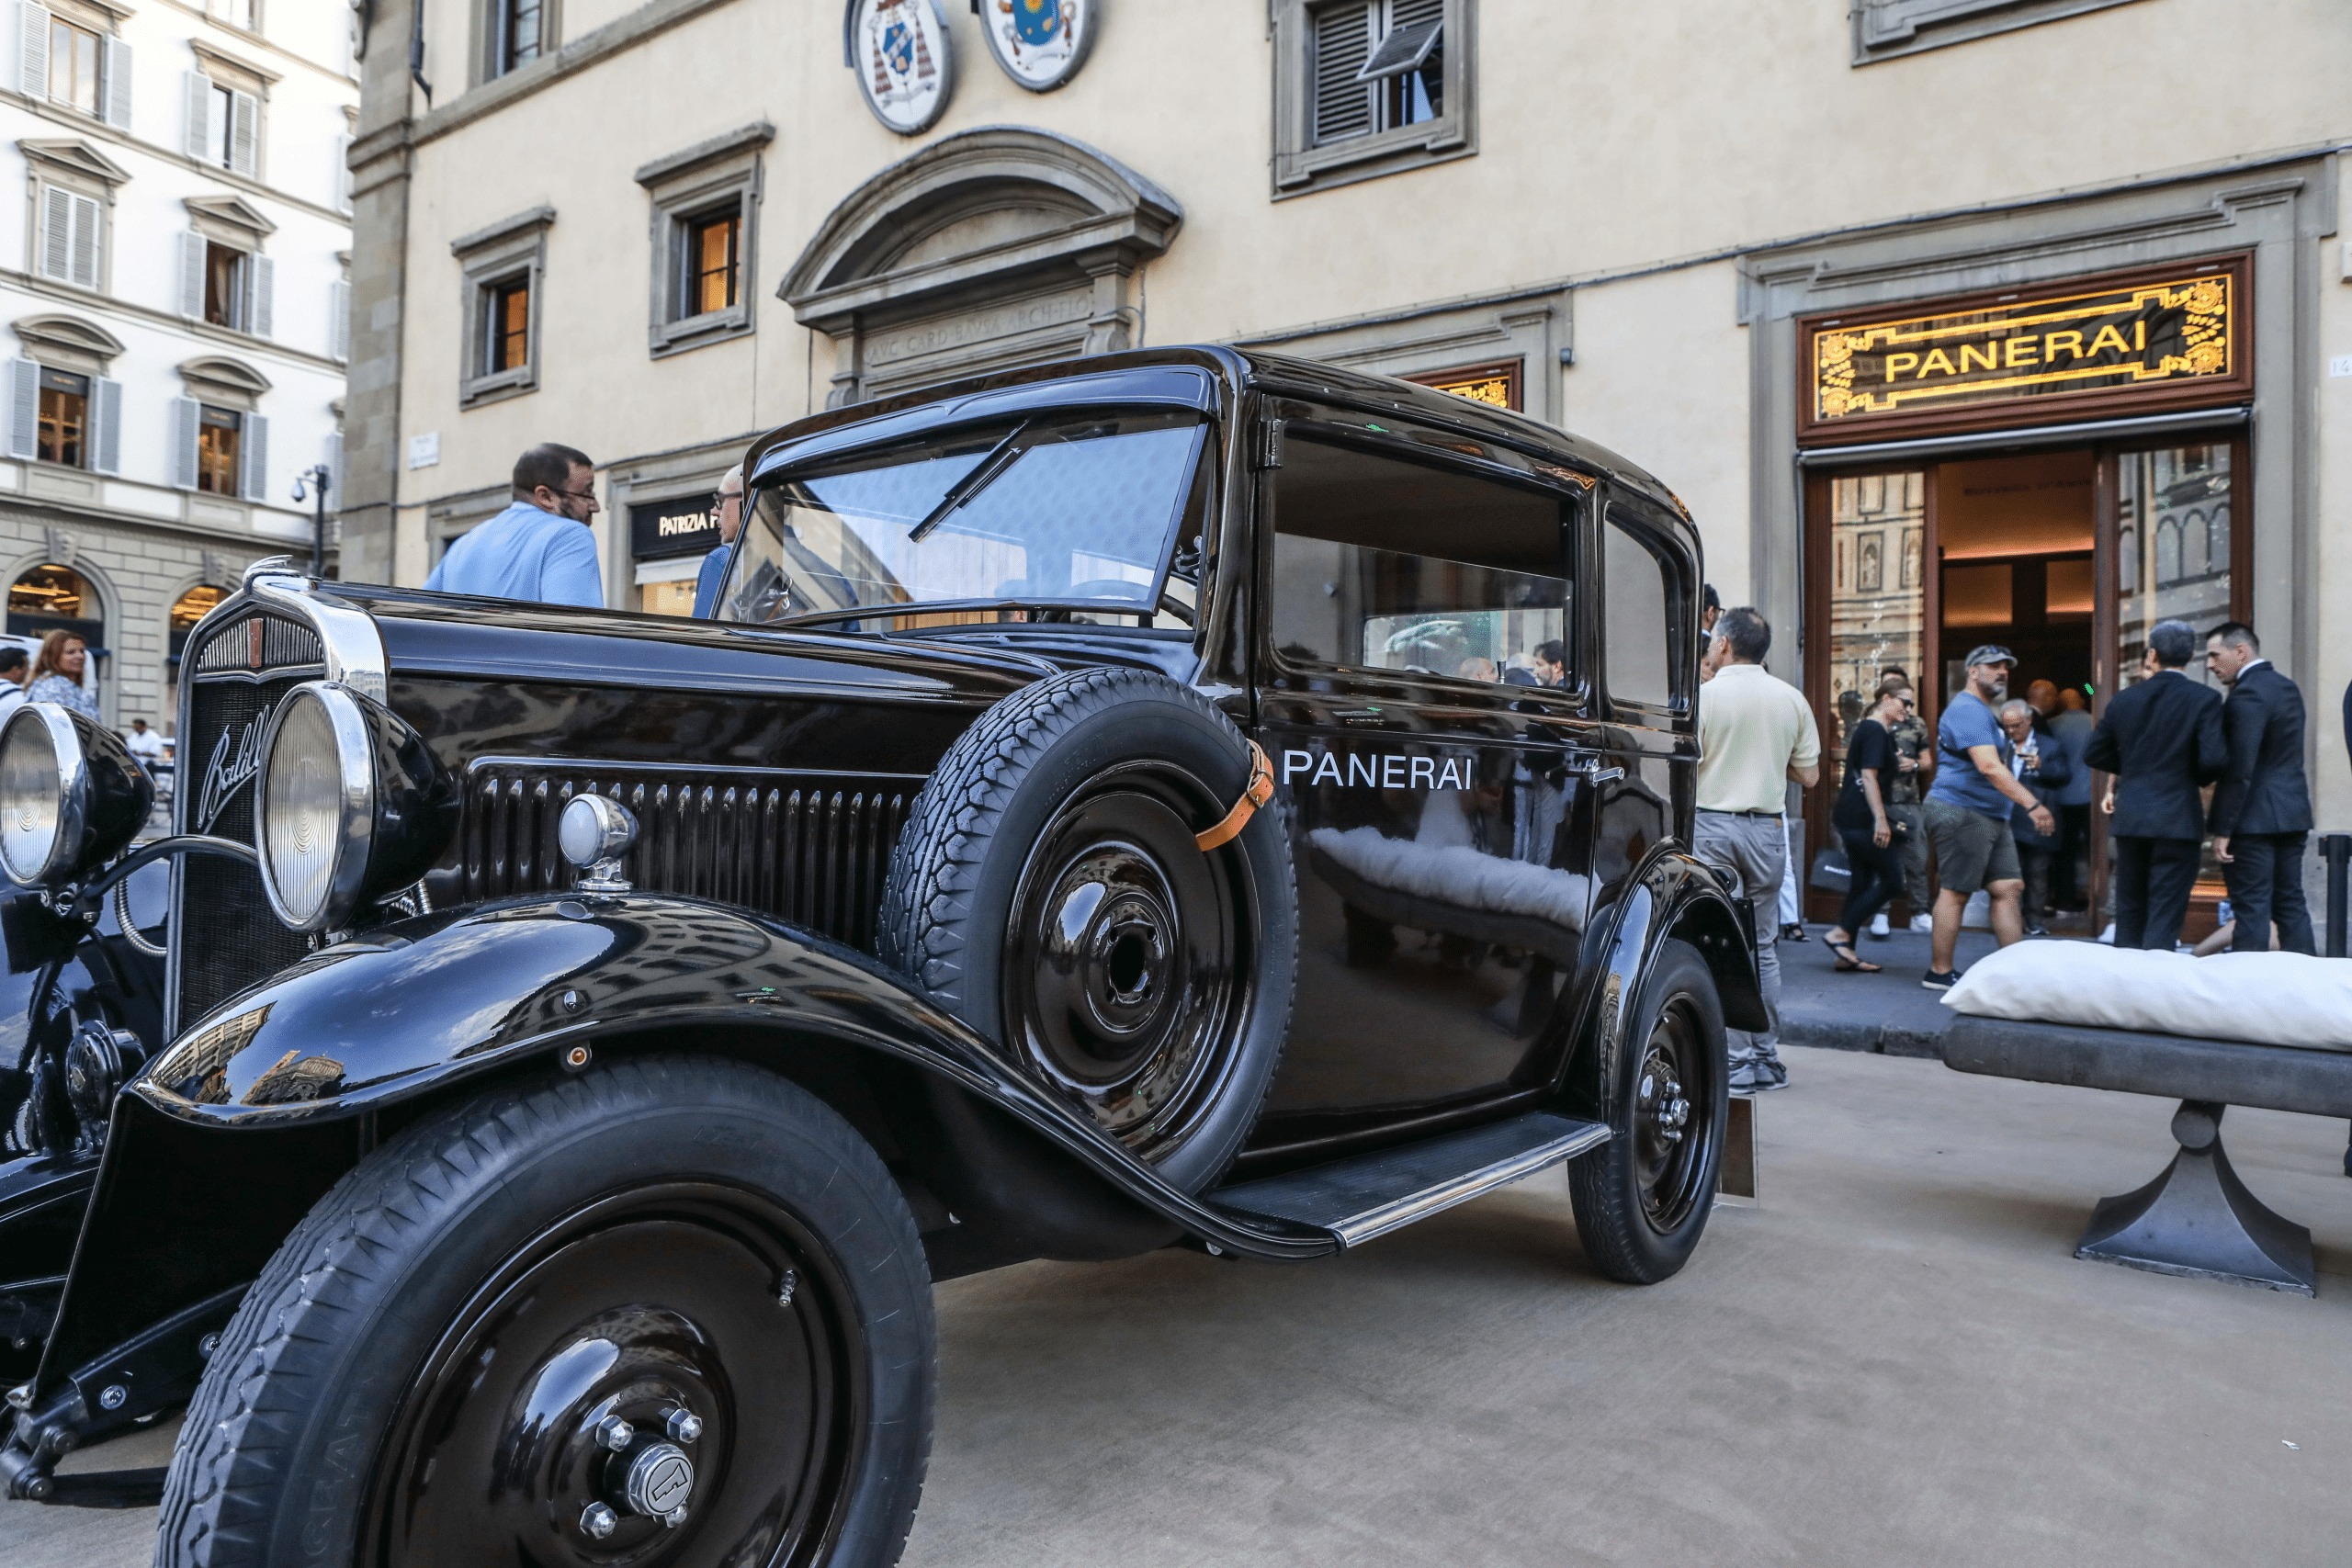 Panerai reopens flagship and museum in Florence at Piazza San Giovanni